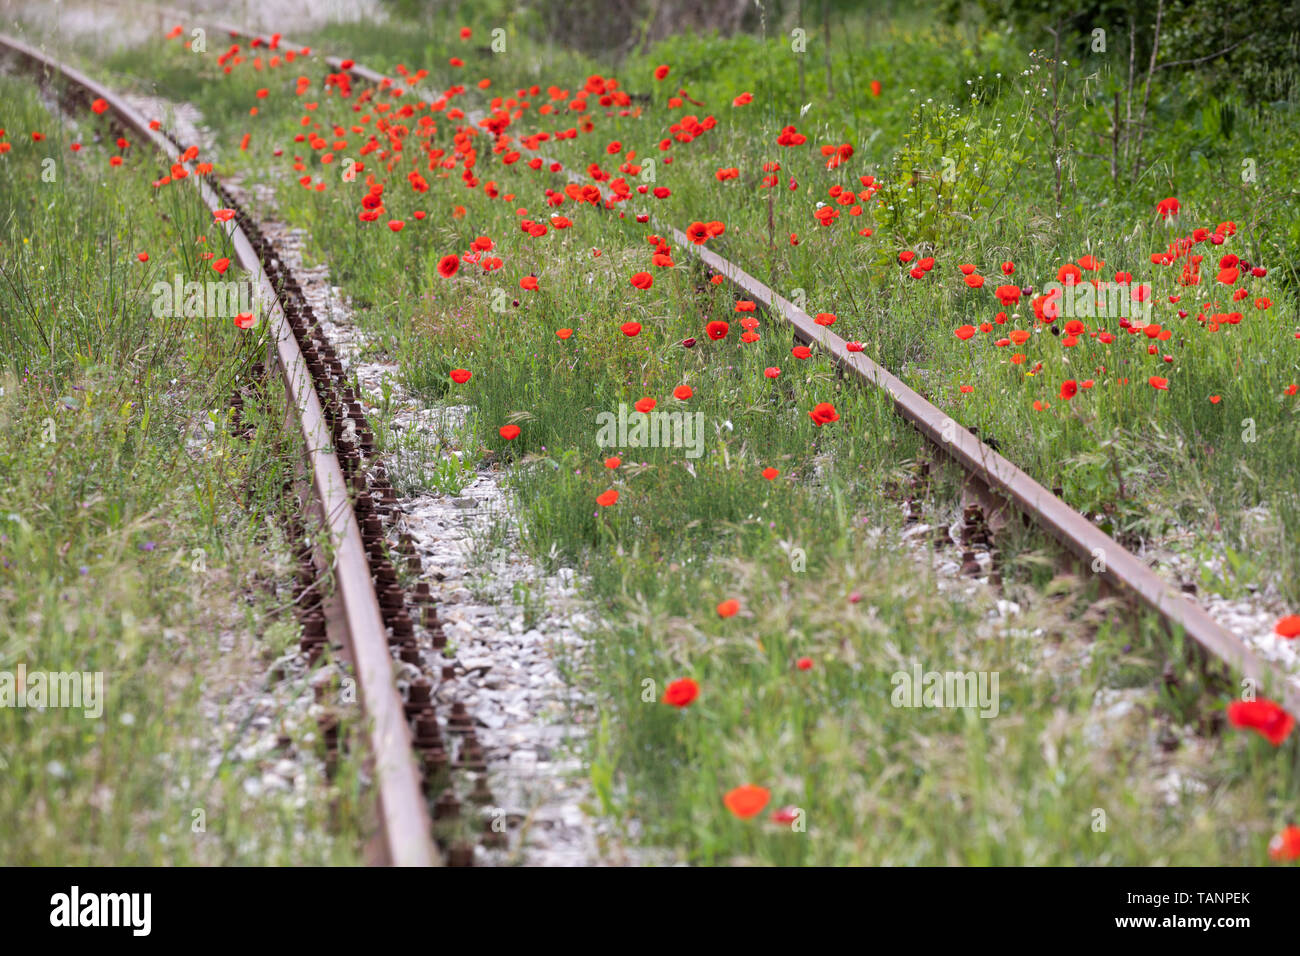 Poppies growing along railtrack, San Giovanni d'Asso, Siena Province, Tuscany, Italy, Europe Stock Photo